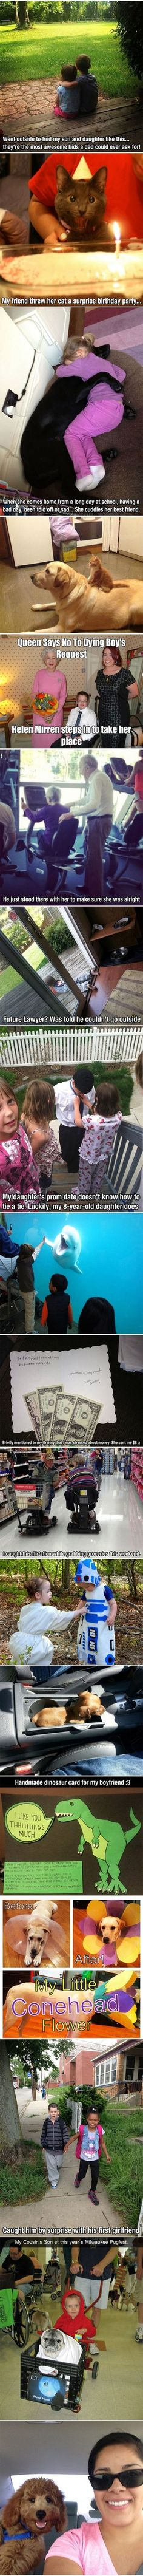 123 best Ha ha LOL images on Pinterest | Funny images, Hilarious and ...